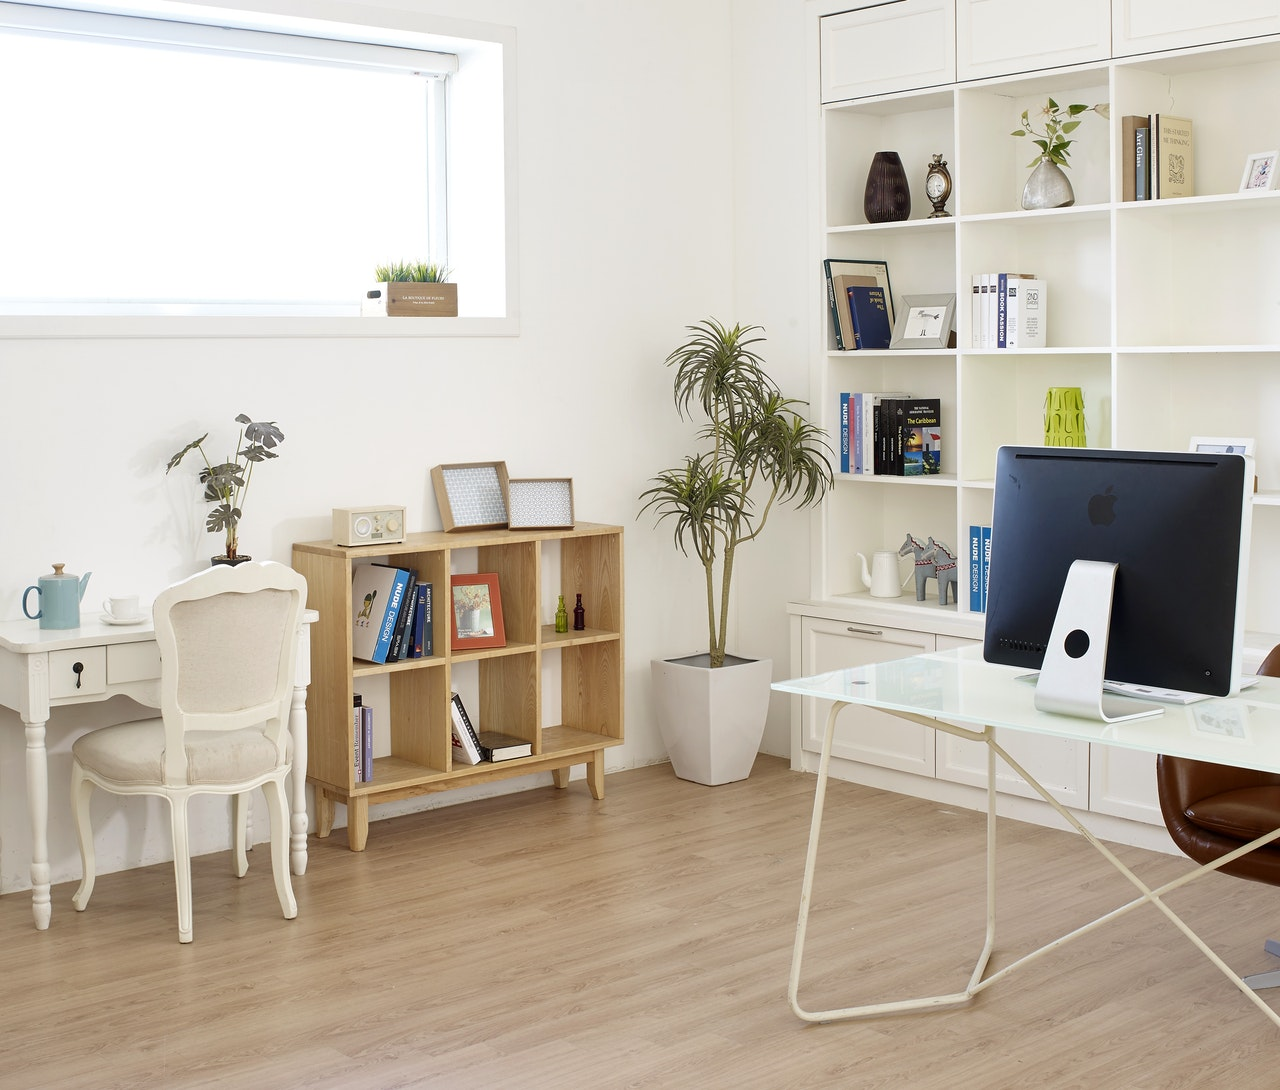 Shelving for space saving